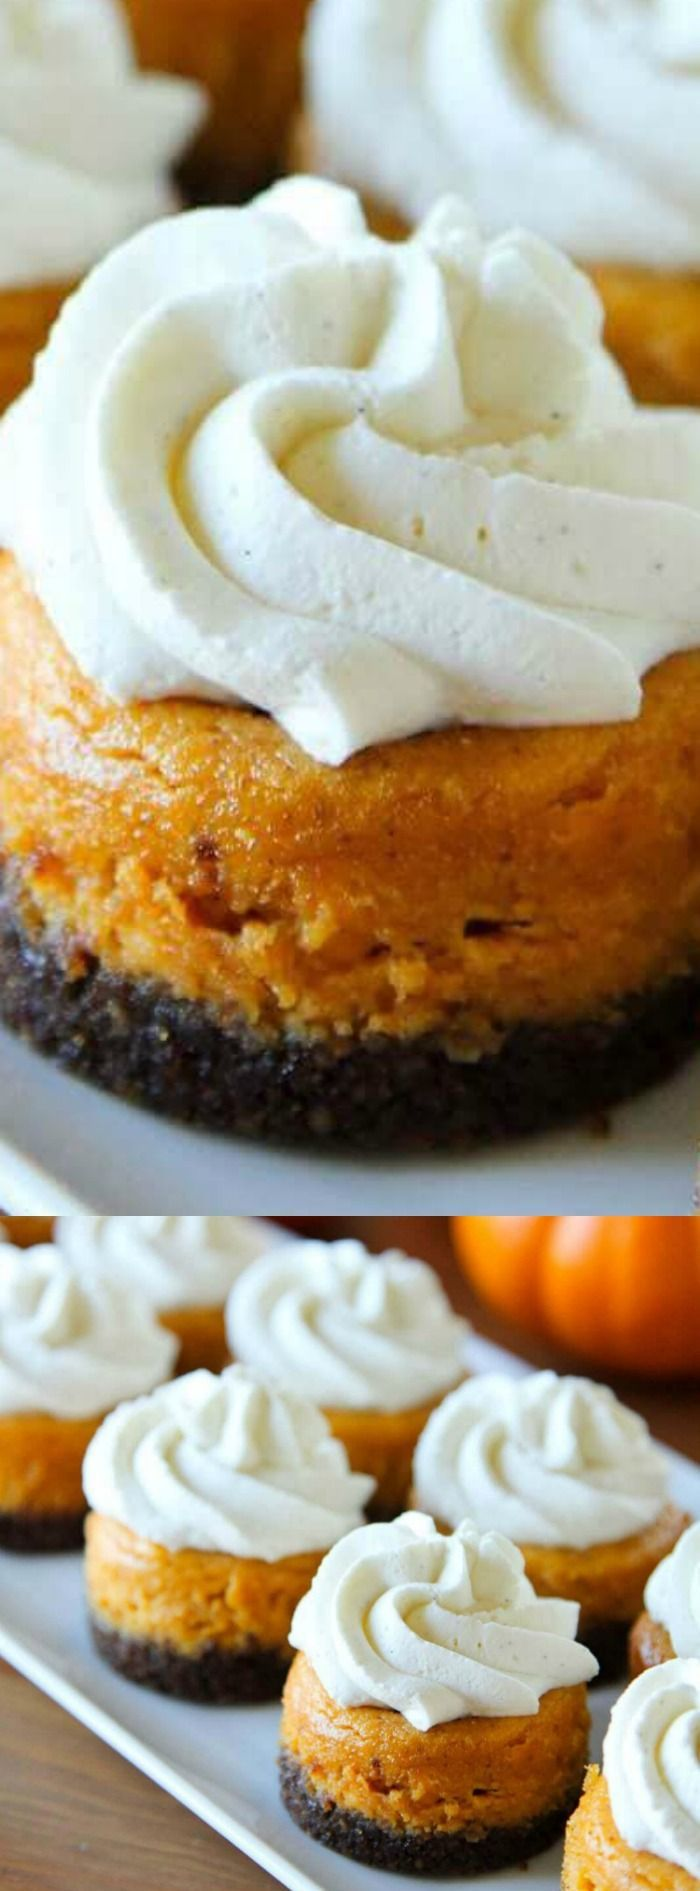 These Mini Pumpkin Cheesecakes with Gingersnap Crusts from Life Made Simple will surely become one of your new fall favorites! They are spiced to perfection and topped with a delicious vanilla bean whipped cream.